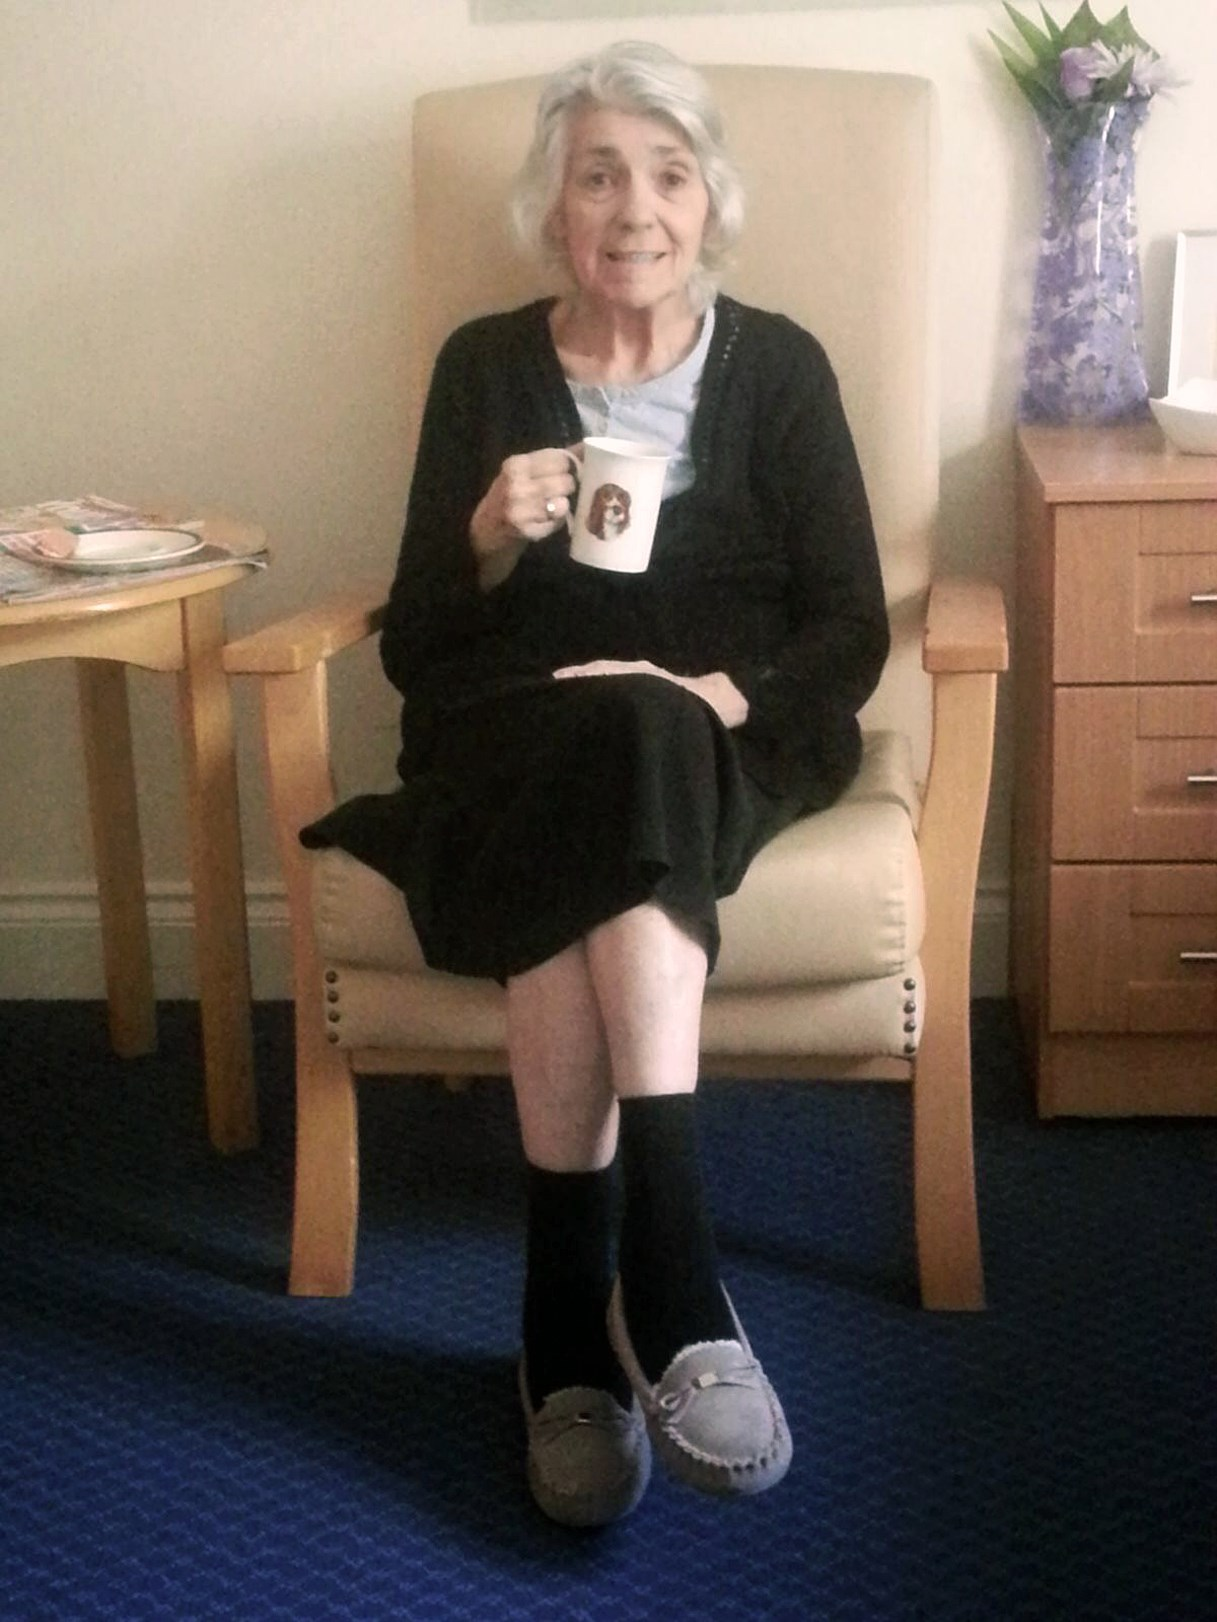 Mum having a 'Lovely cup of tea'